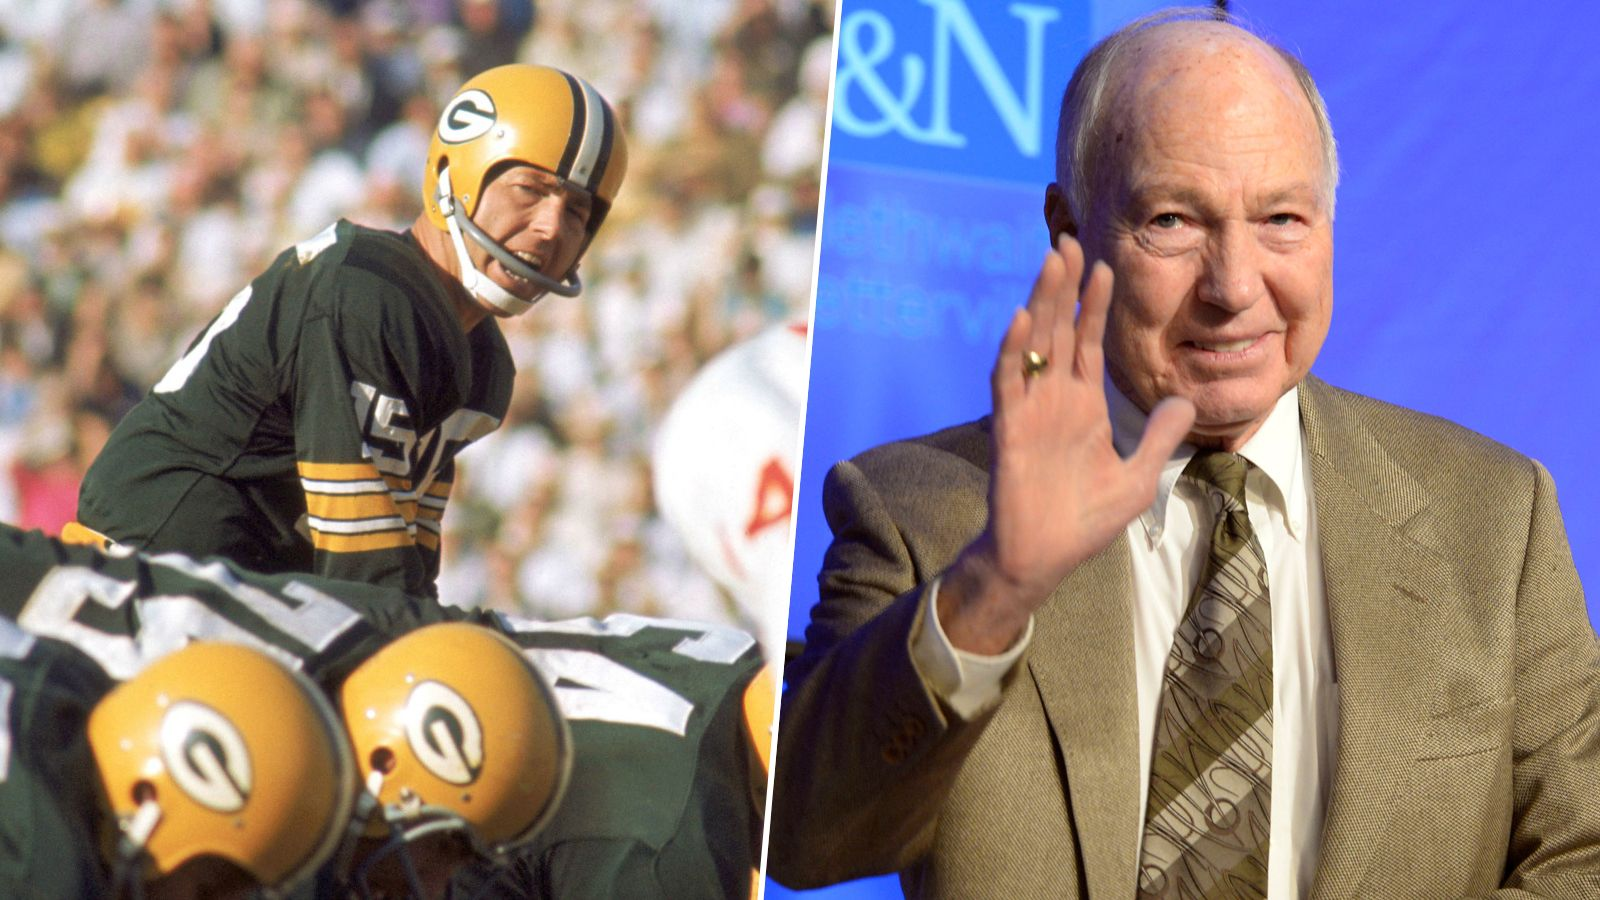 The First Superbowl Qb In Pro Football History Not Just Nfl History And Greenbaypackers Legend Bartstarr Dead At 85 Today T Bart Starr Fox Sports Nfl